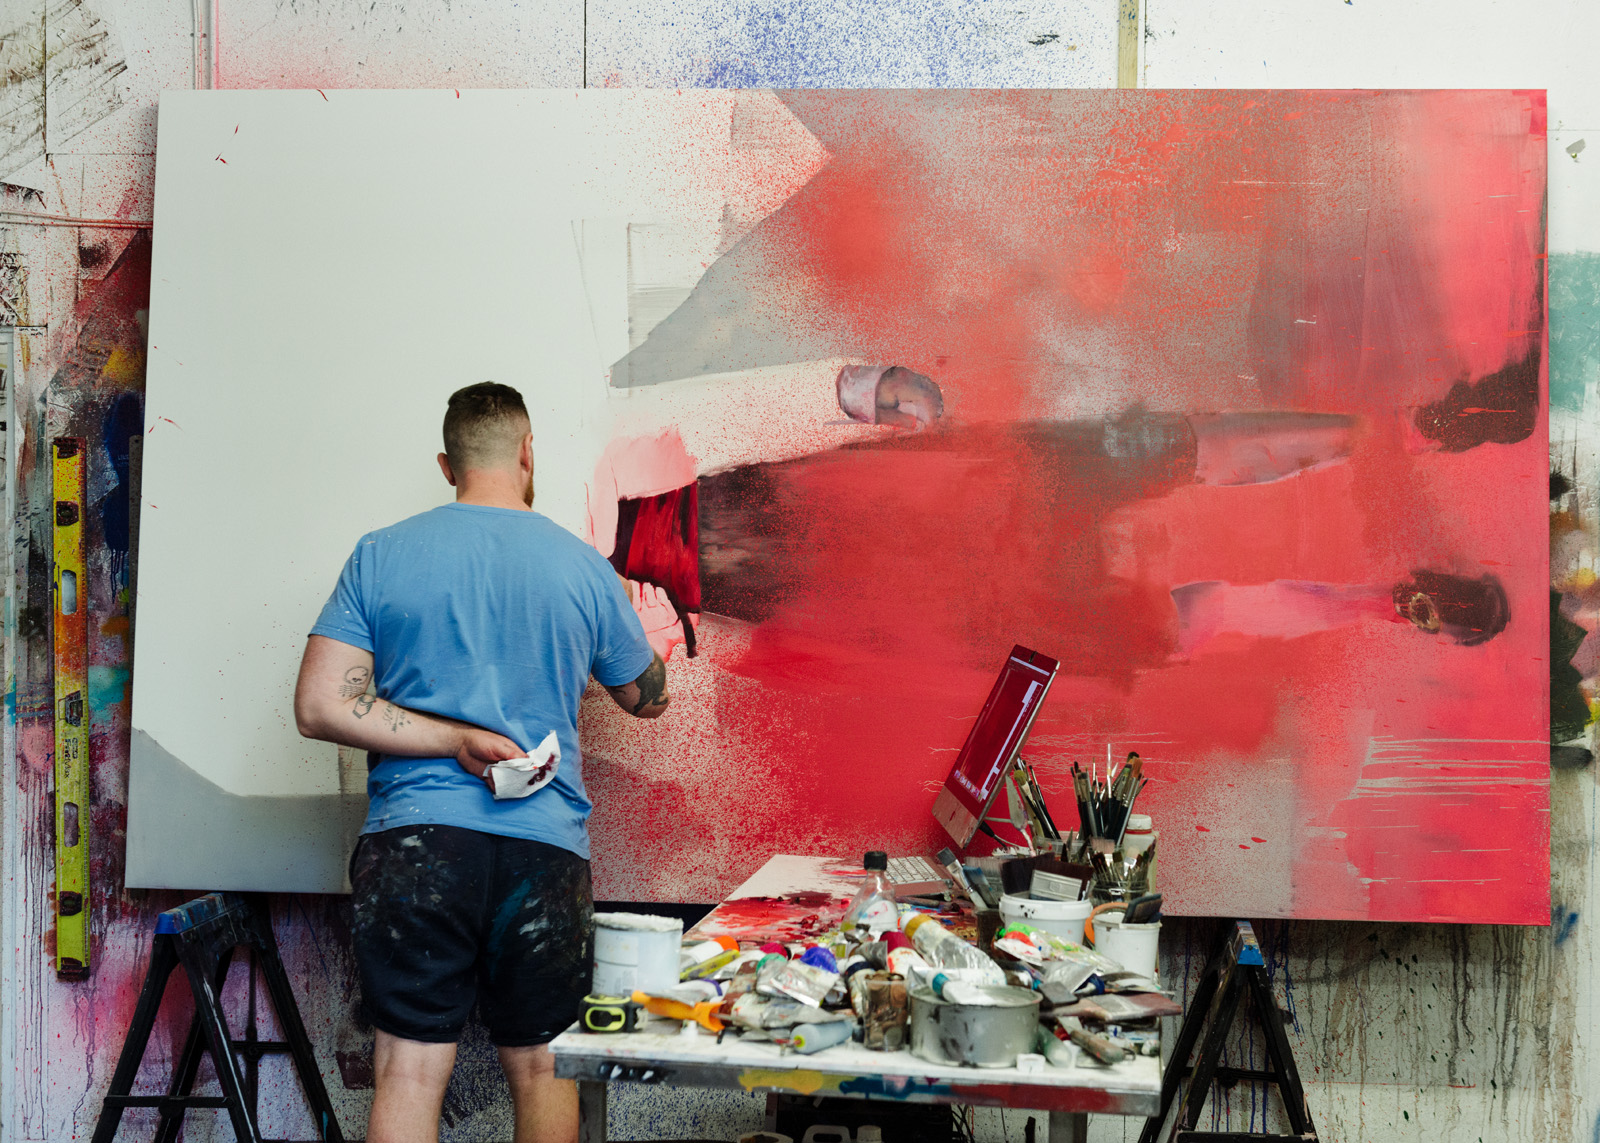 The studio of Irish artist, Conor Harrington